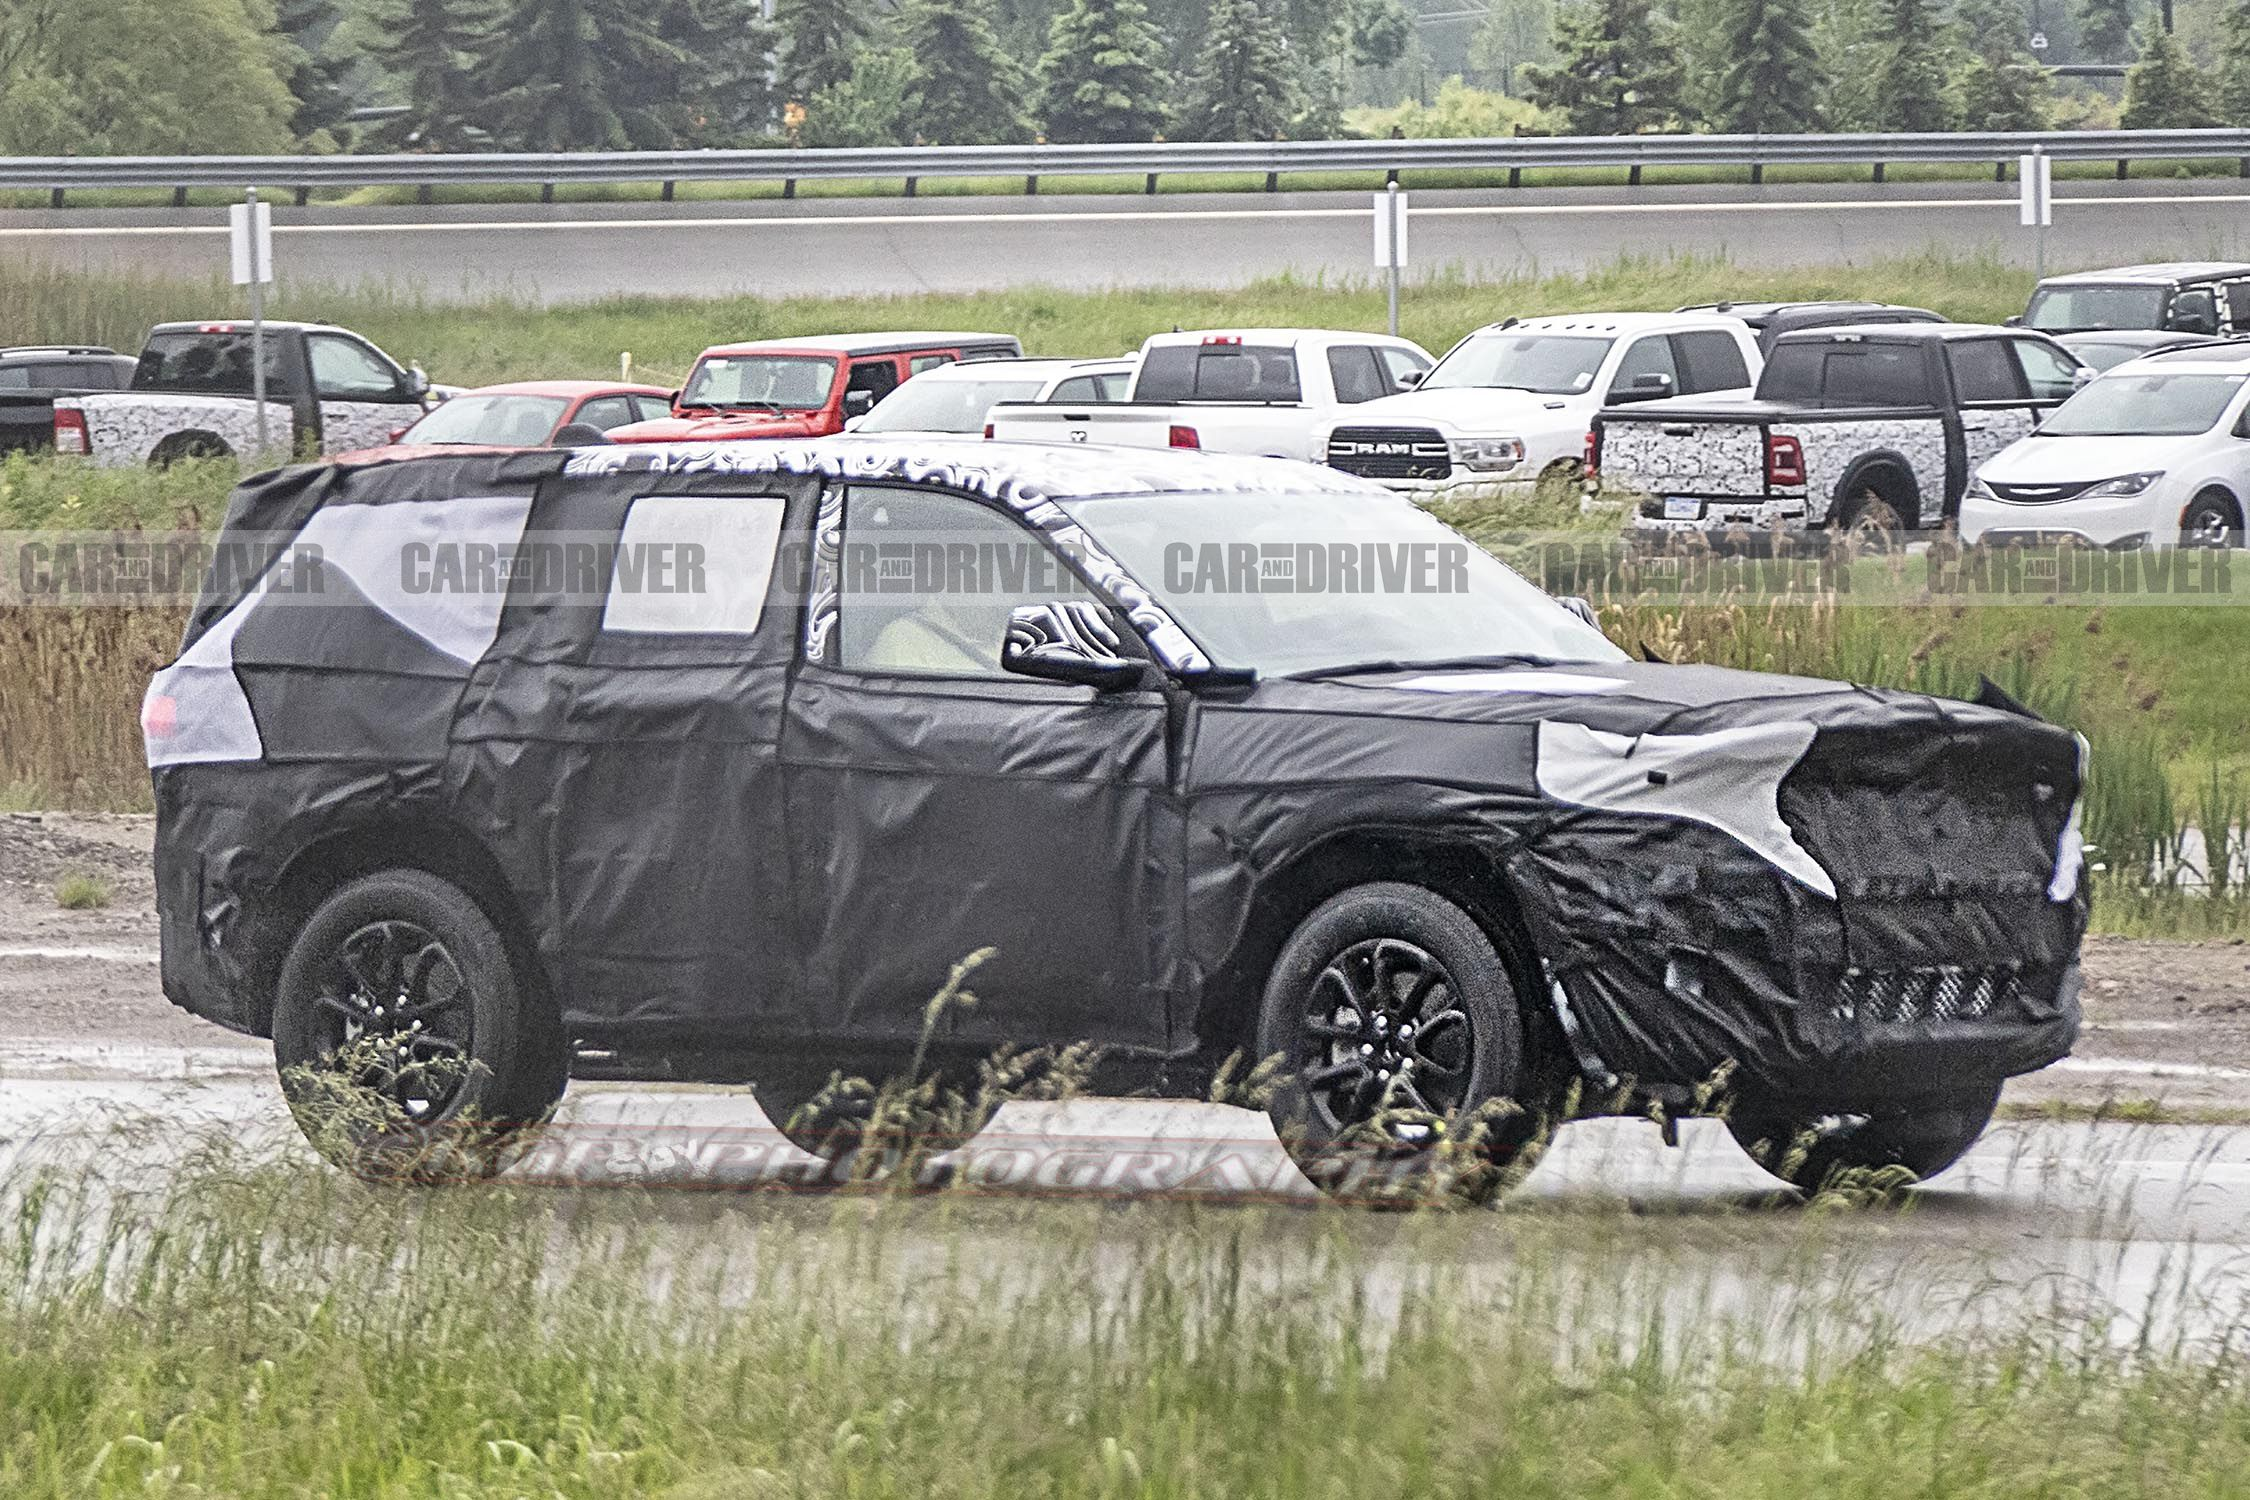 2021 Jeep Grand Cherokee Spied New Larger Suv